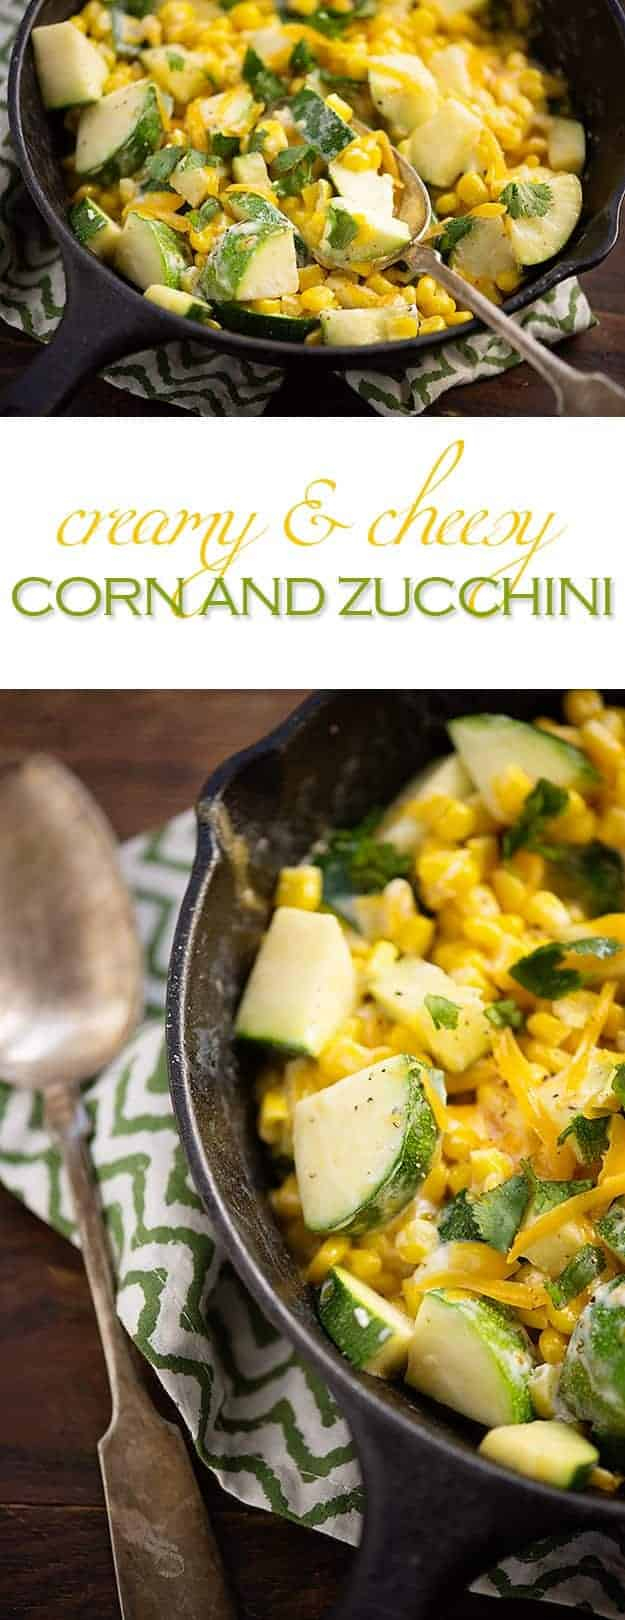 This zucchini and corn side dish is full of healthy vegetables! It's nice and creamy from the cheese and sour cream.